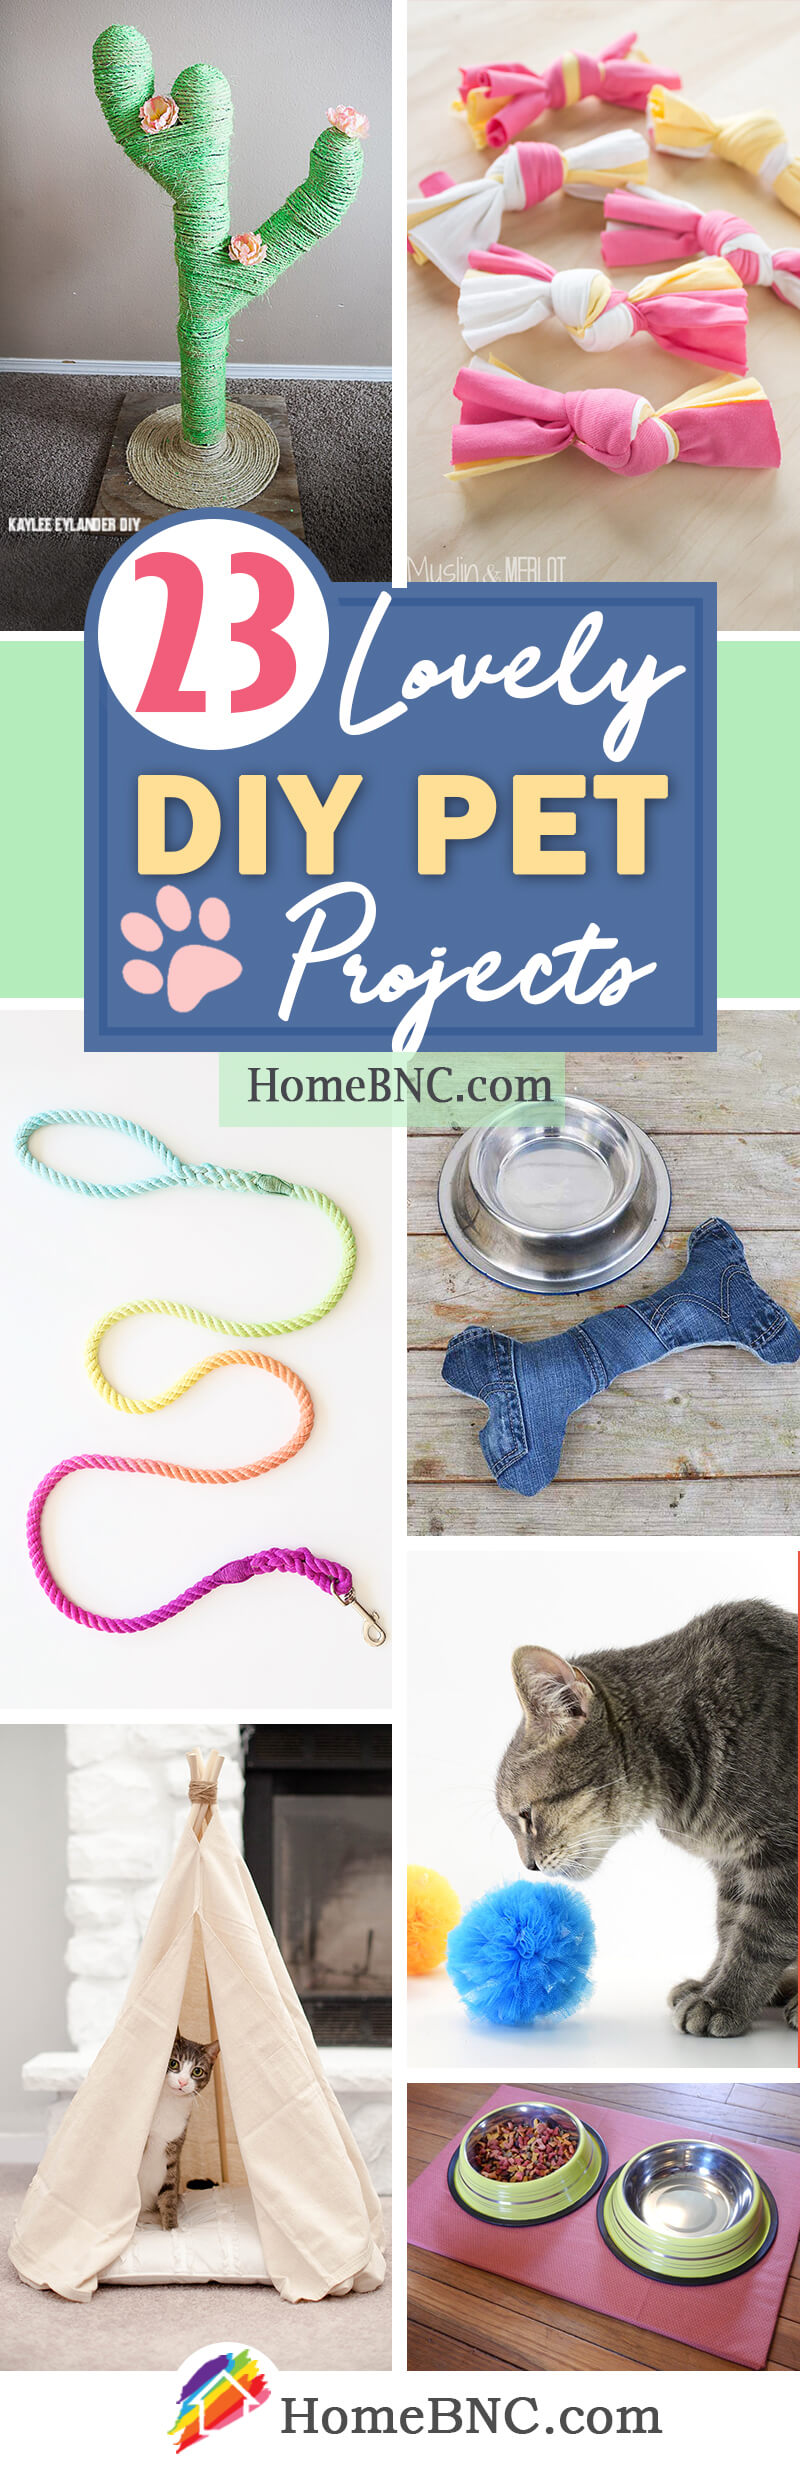 DIY Pet Project Ideas